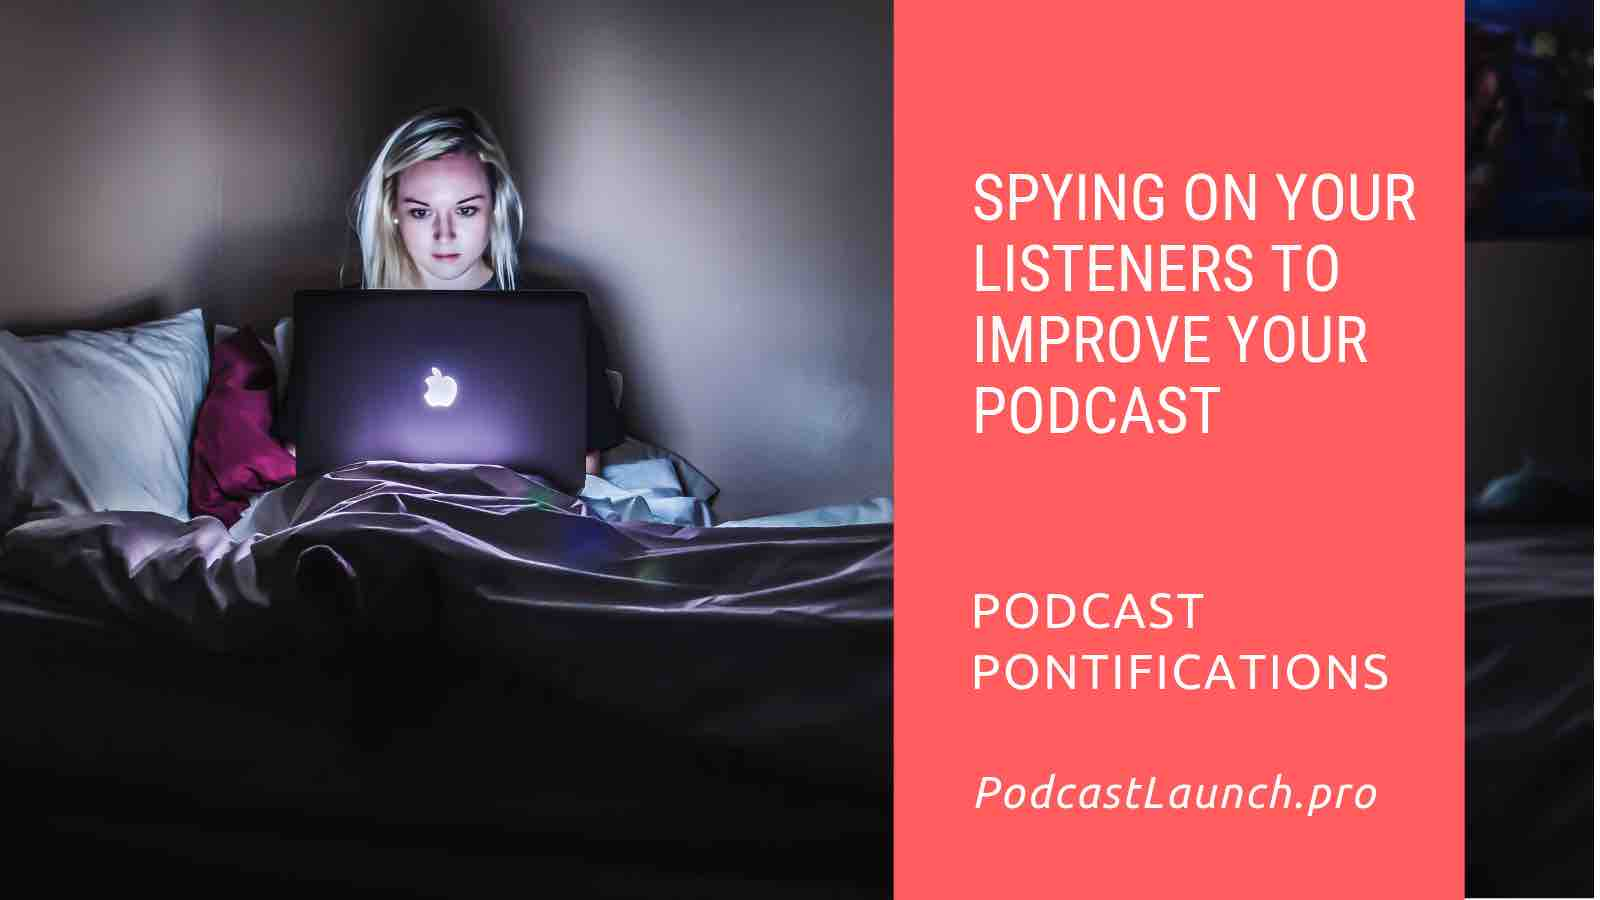 Spying On Your Listeners Can Improve Your Podcast